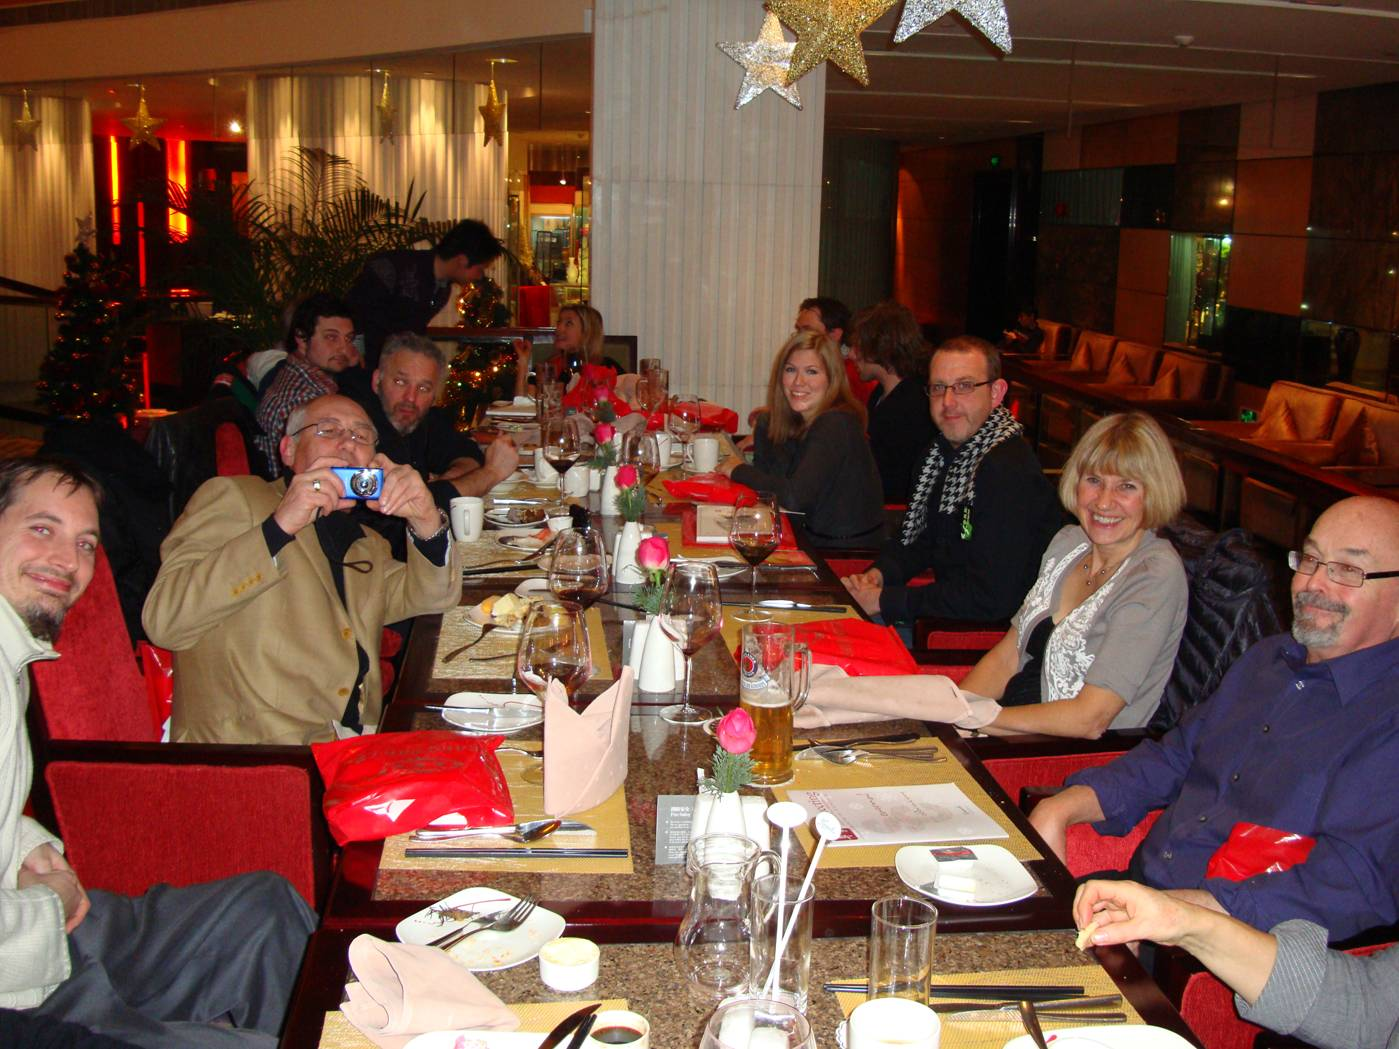 Picture:  Some of the teachers at the Five Star Feast, Kempinski Hotel, Wuxi, China